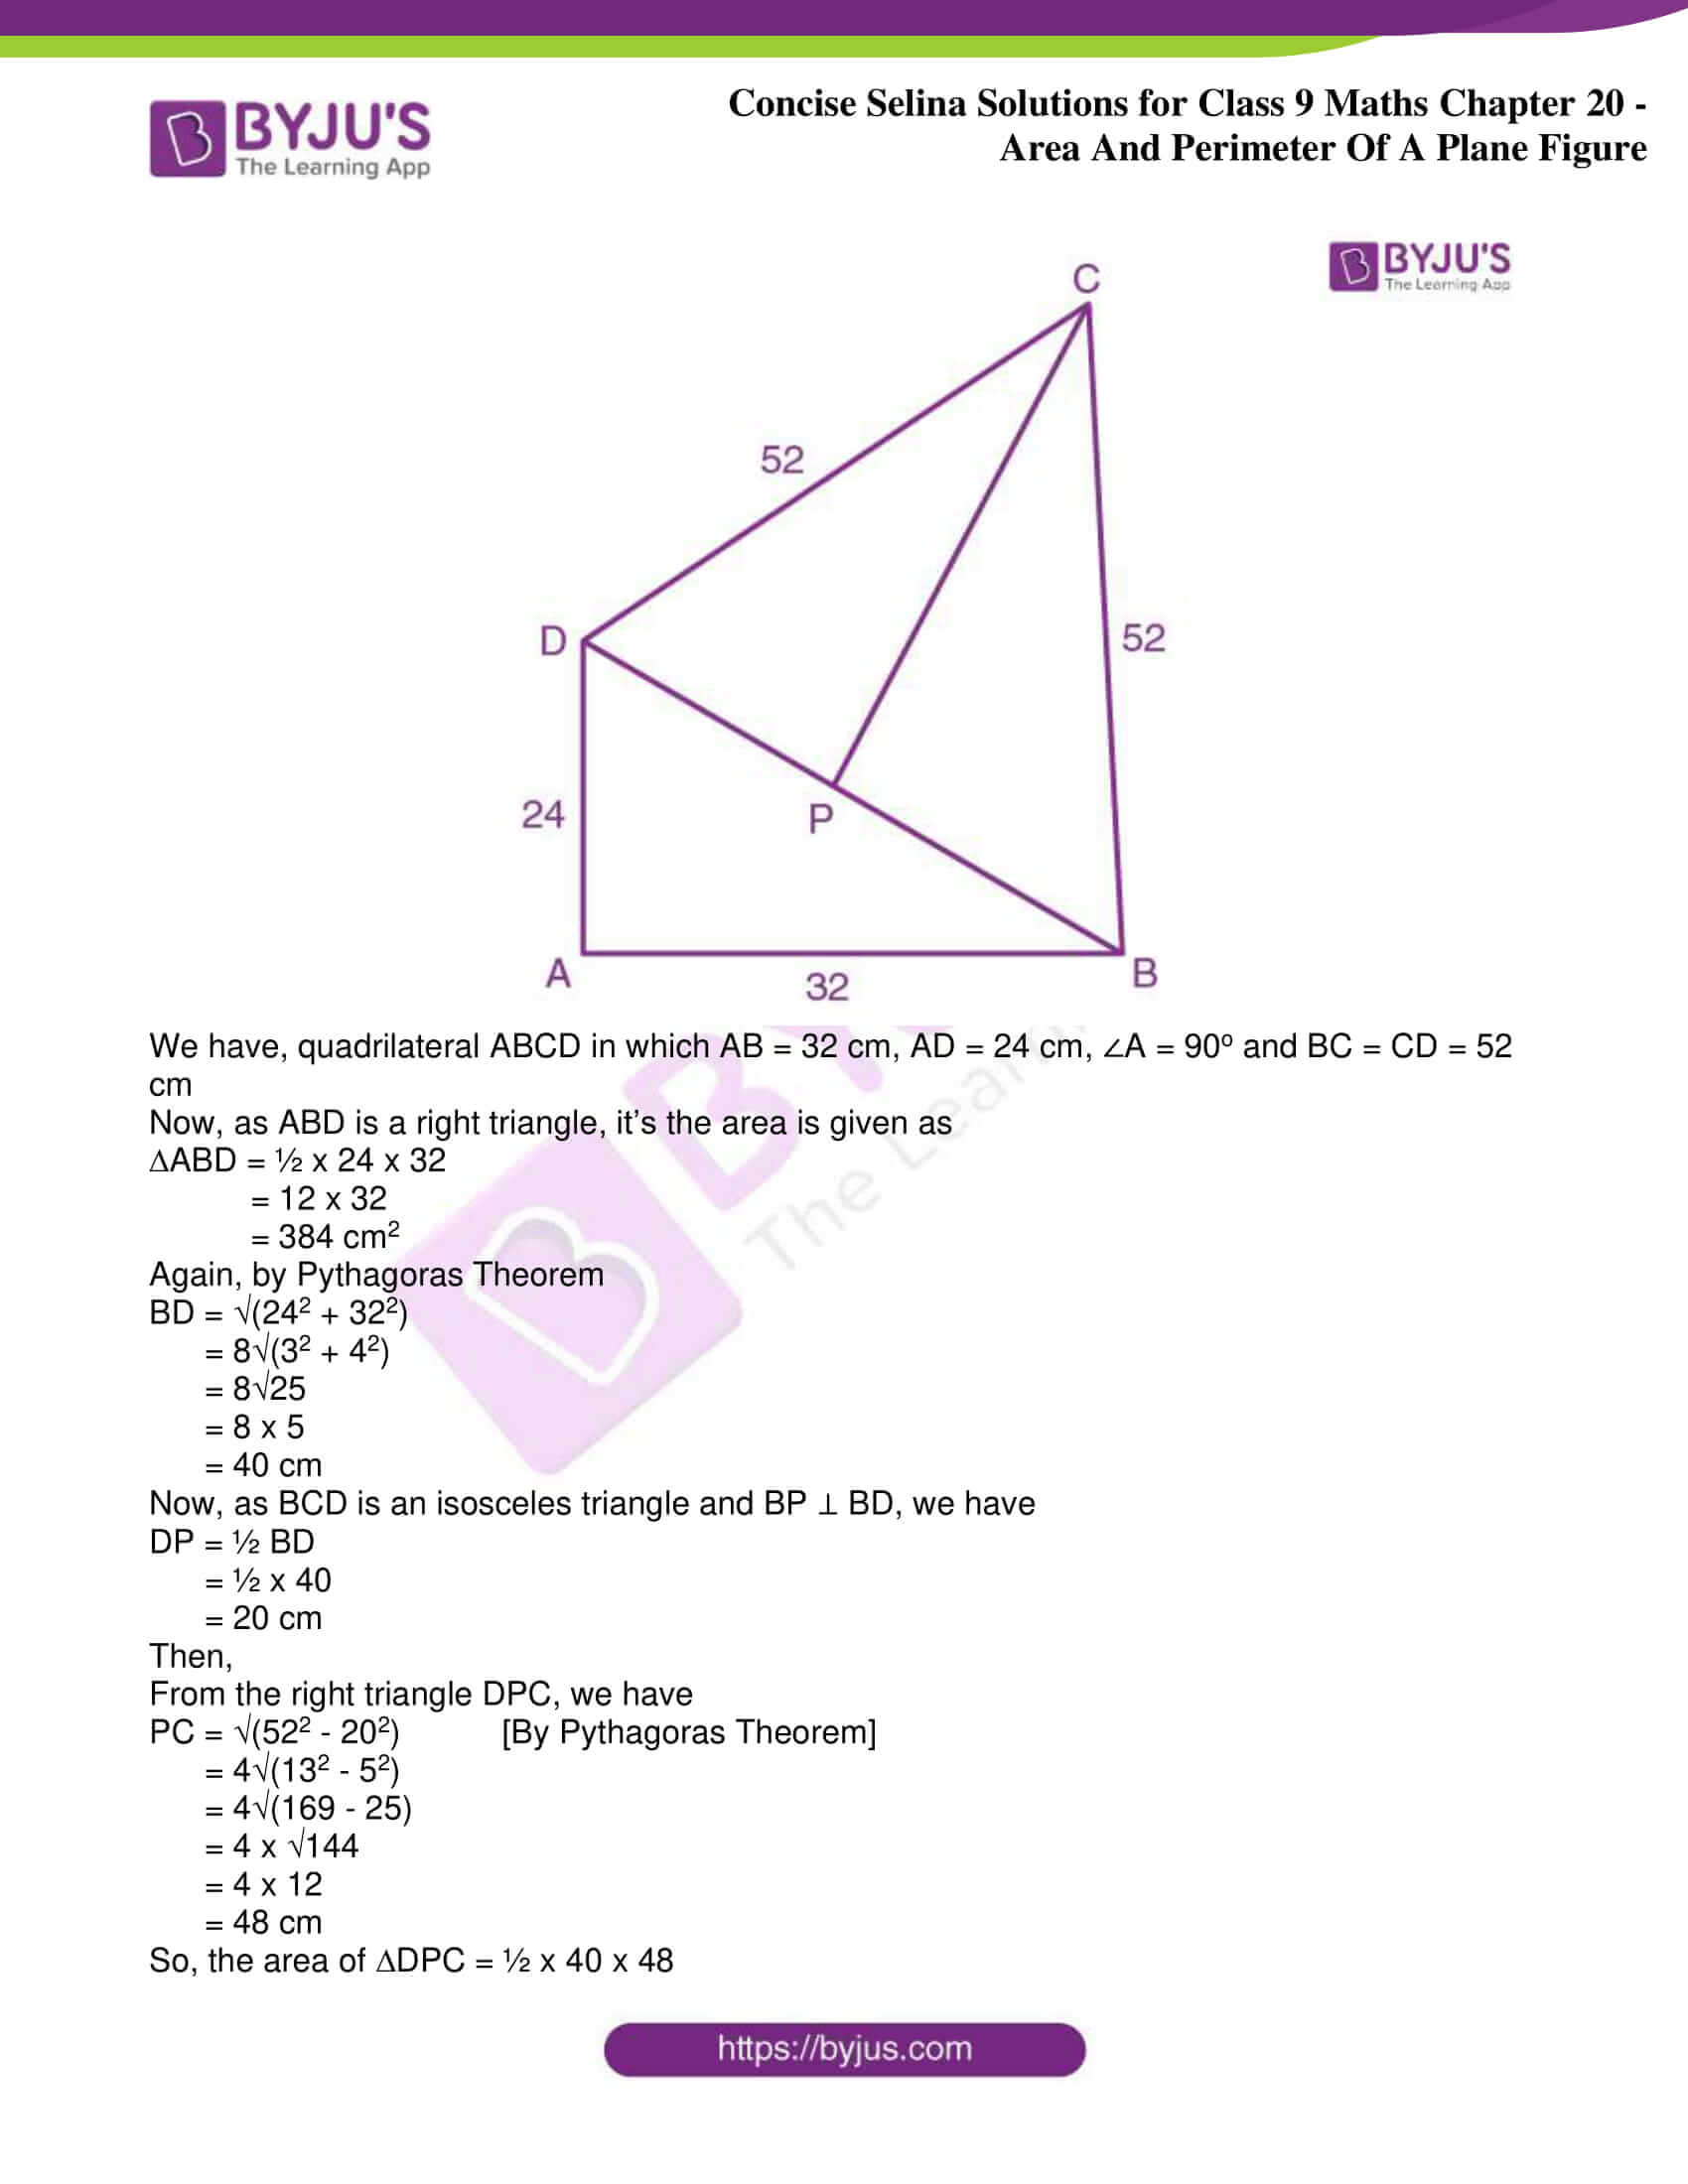 icse class 9 jun9 maths selina solutions chapter 20 area and perimeter of a plane figure 06